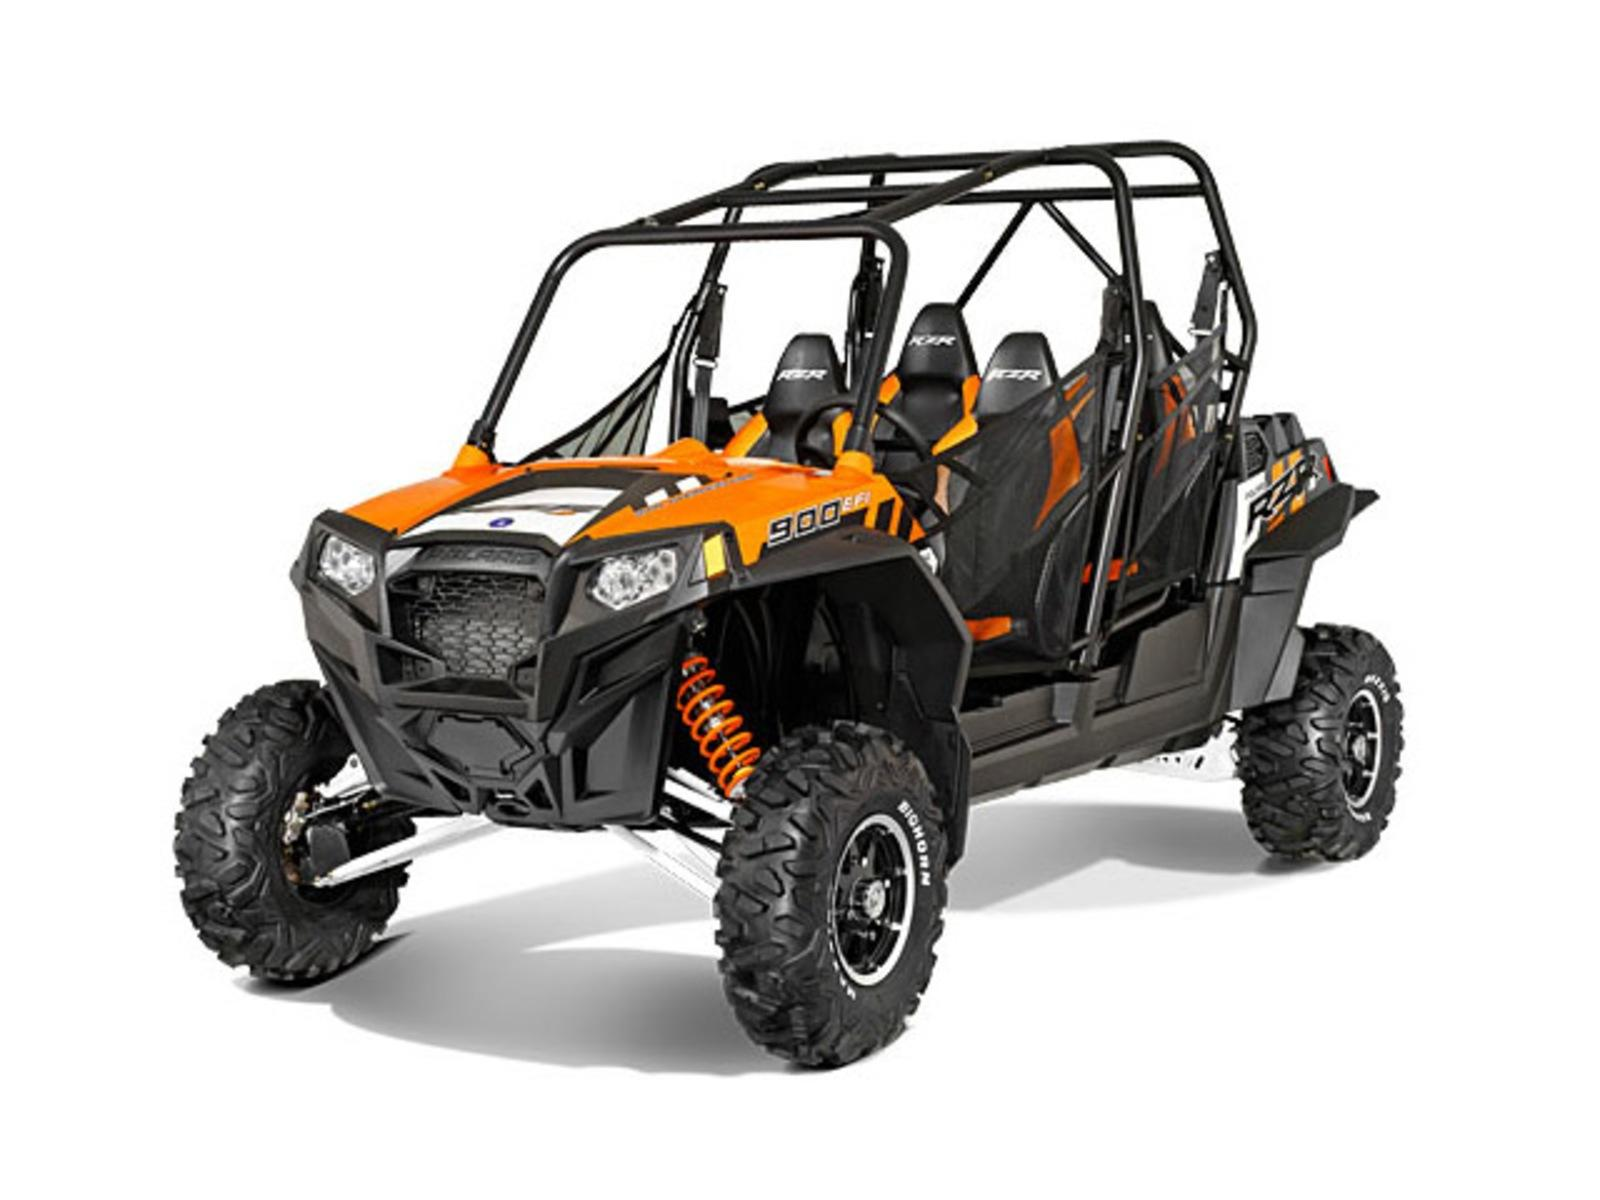 2014 polaris rzr 4 900 eps review top speed. Black Bedroom Furniture Sets. Home Design Ideas